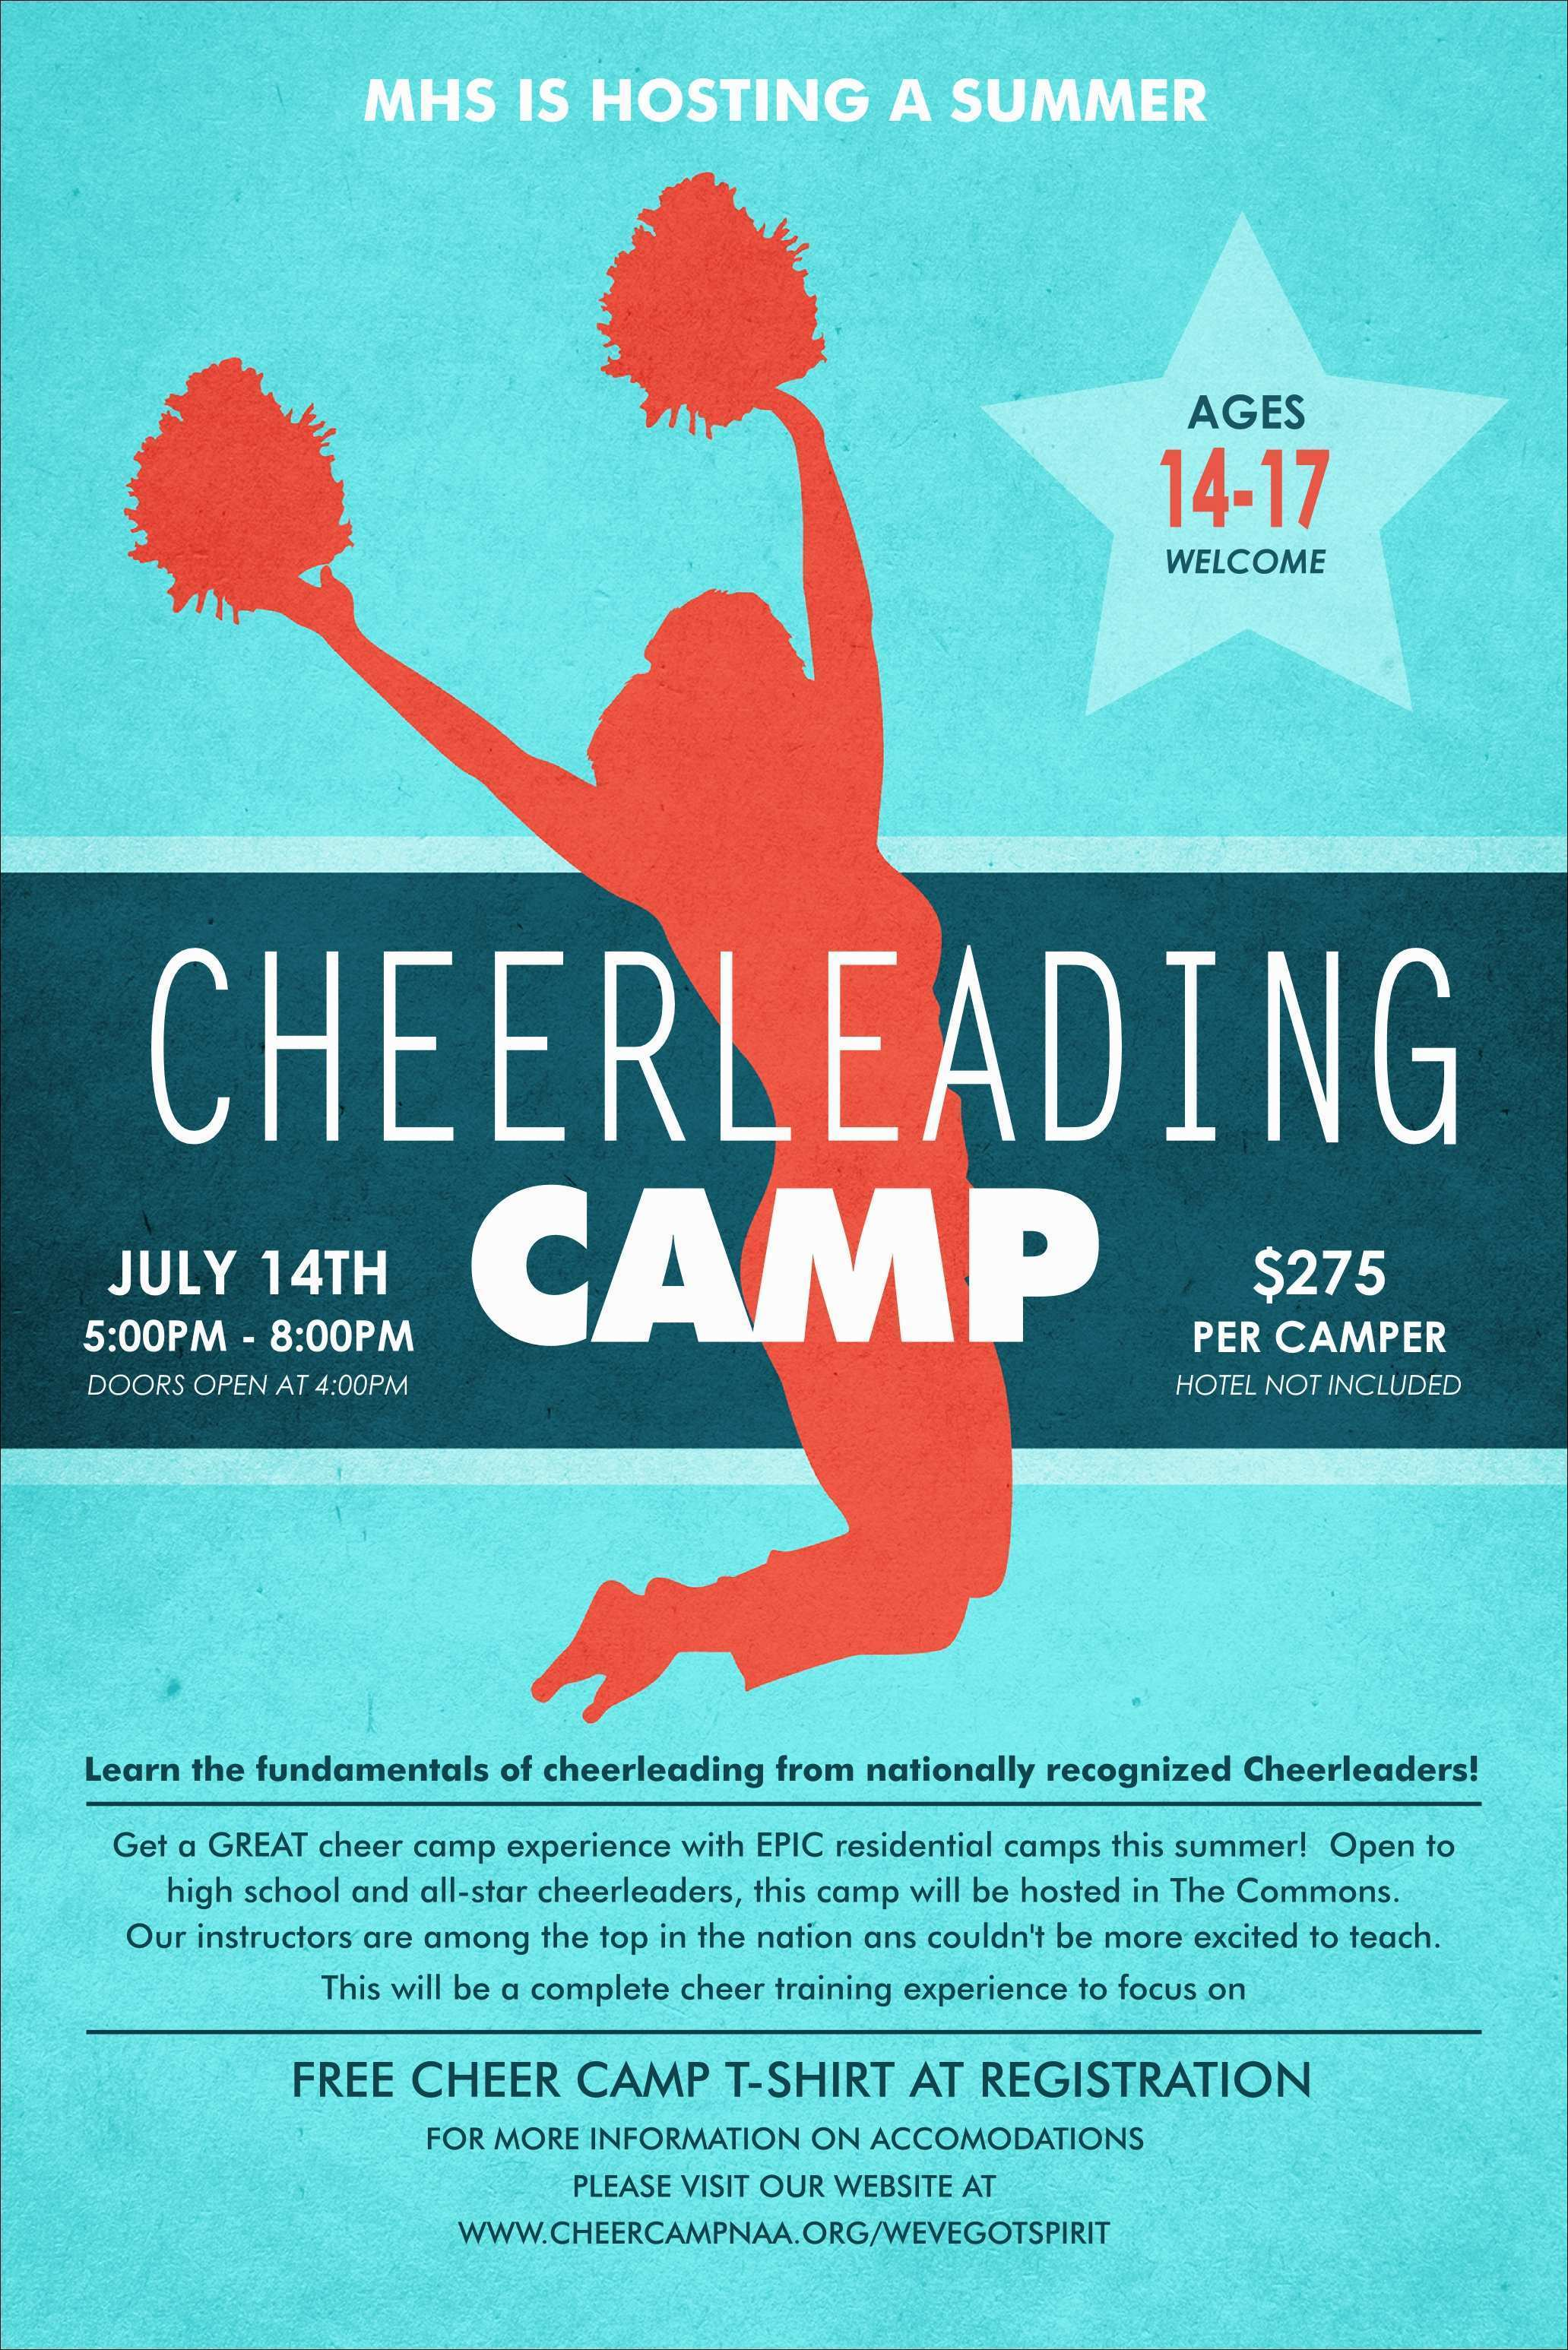 81 Creative Cheer Camp Flyer Template PSD File by Cheer Camp Flyer Template